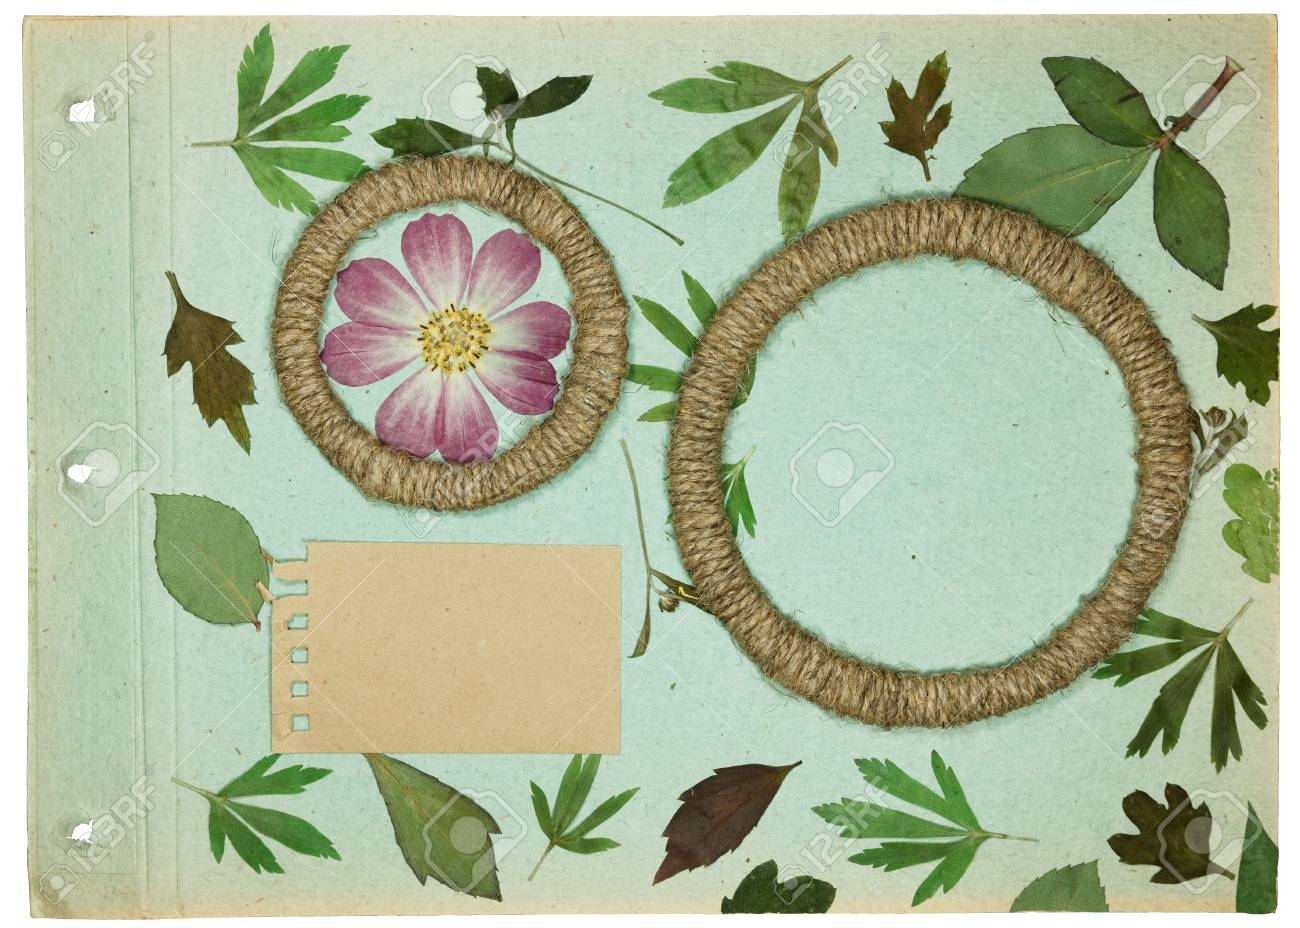 page rustic elements. Modren Elements Banque Du0027images  Page From An Old Photo Album Pistachio Color  Scrapbooking Element Decorated With Leaves Flowers And Petals Wild Flowers Rustic  Throughout Page Rustic Elements